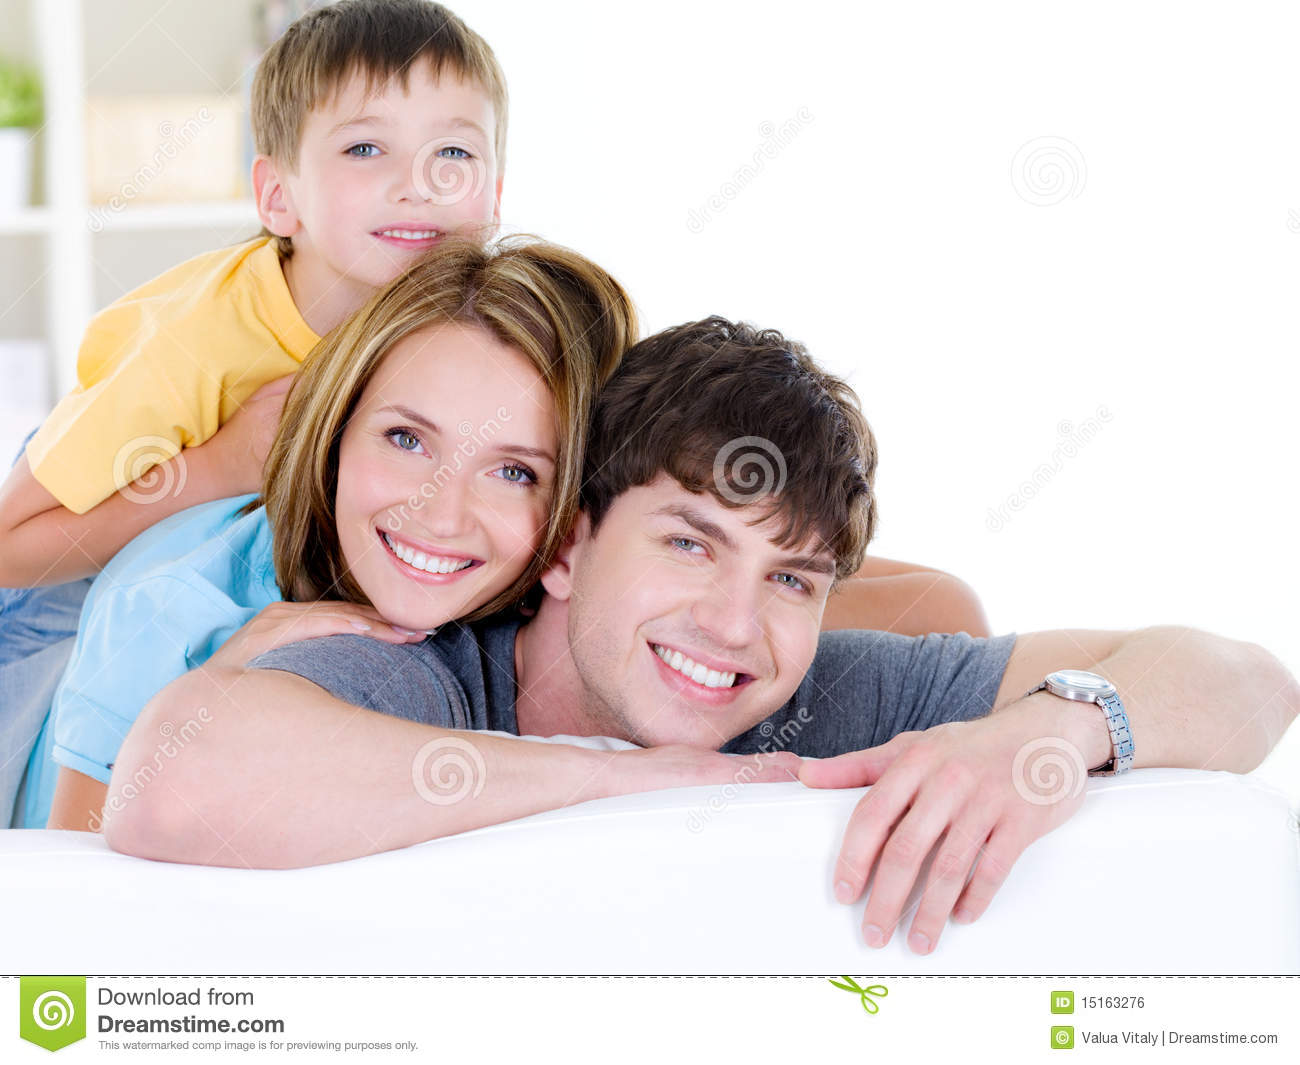 three smiling happy indoors services royalty face foto valuavitaly son young preview dreamstime insurance depositphotos